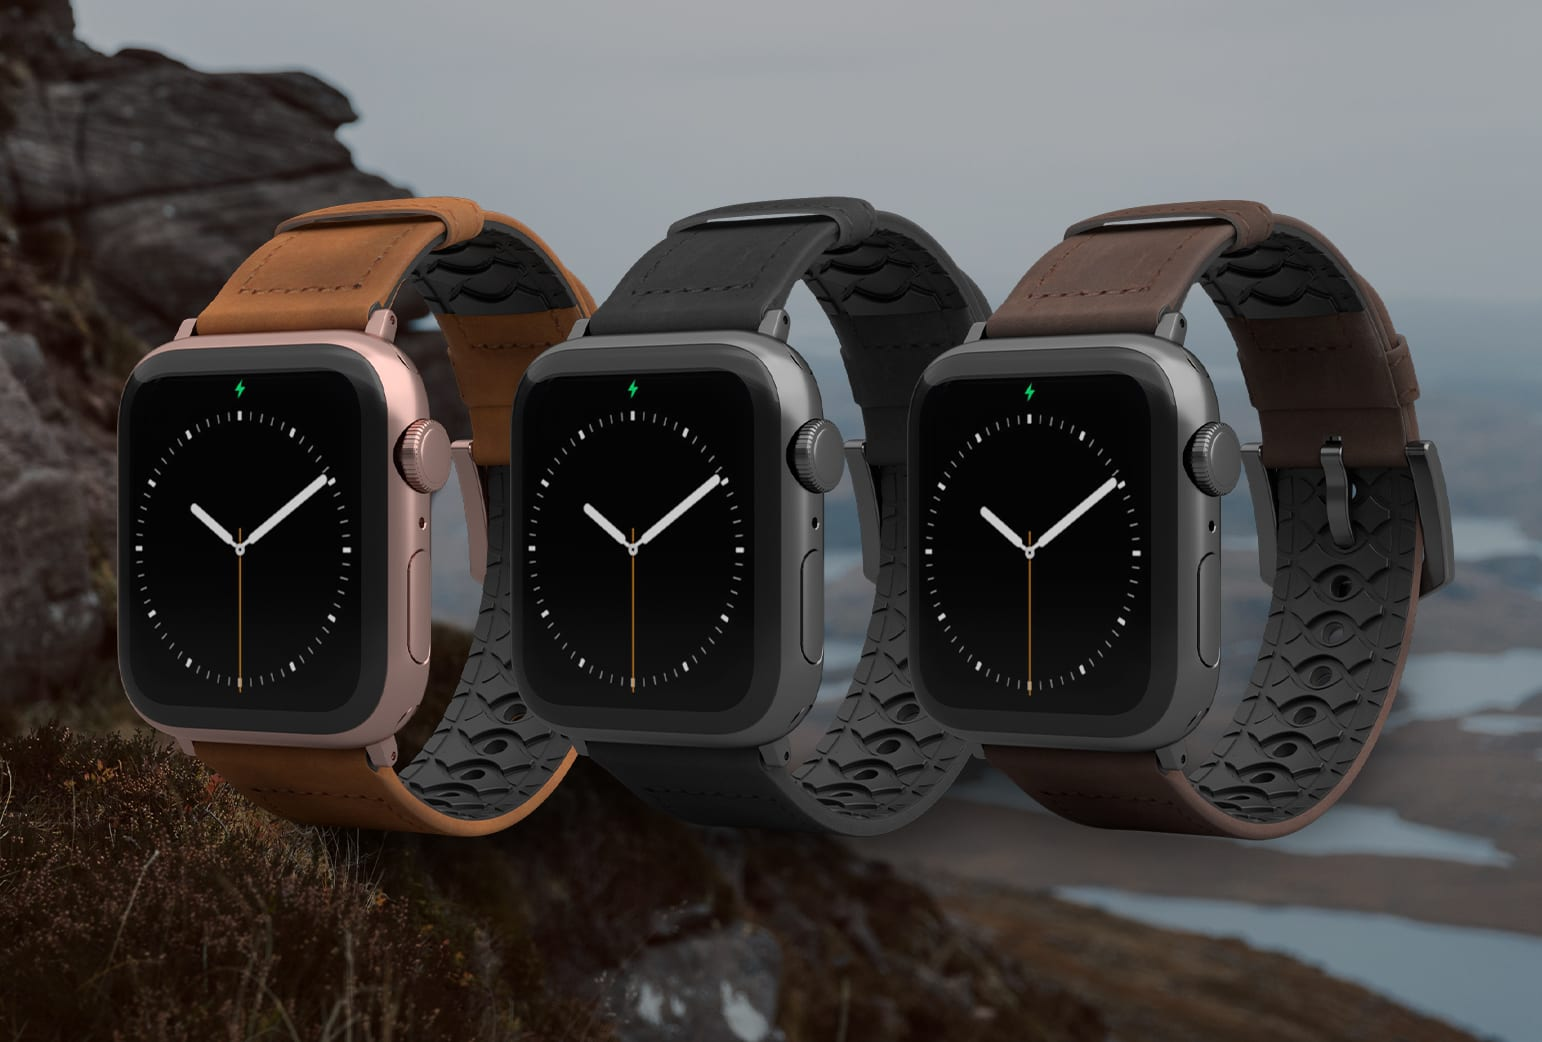 Leather breathable watch bands for the outdoors